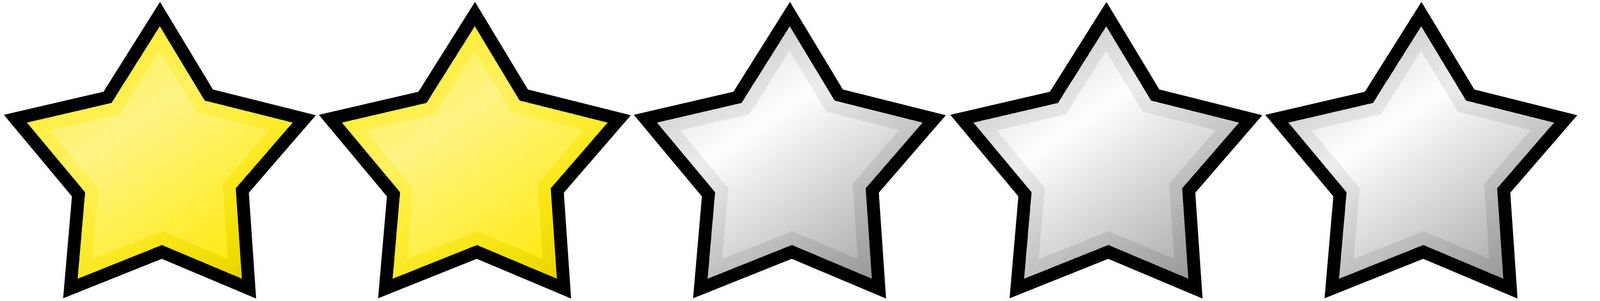 4 5 star clipart jpg library library Free 5 Star Images, Download Free Clip Art, Free Clip Art on Clipart ... jpg library library